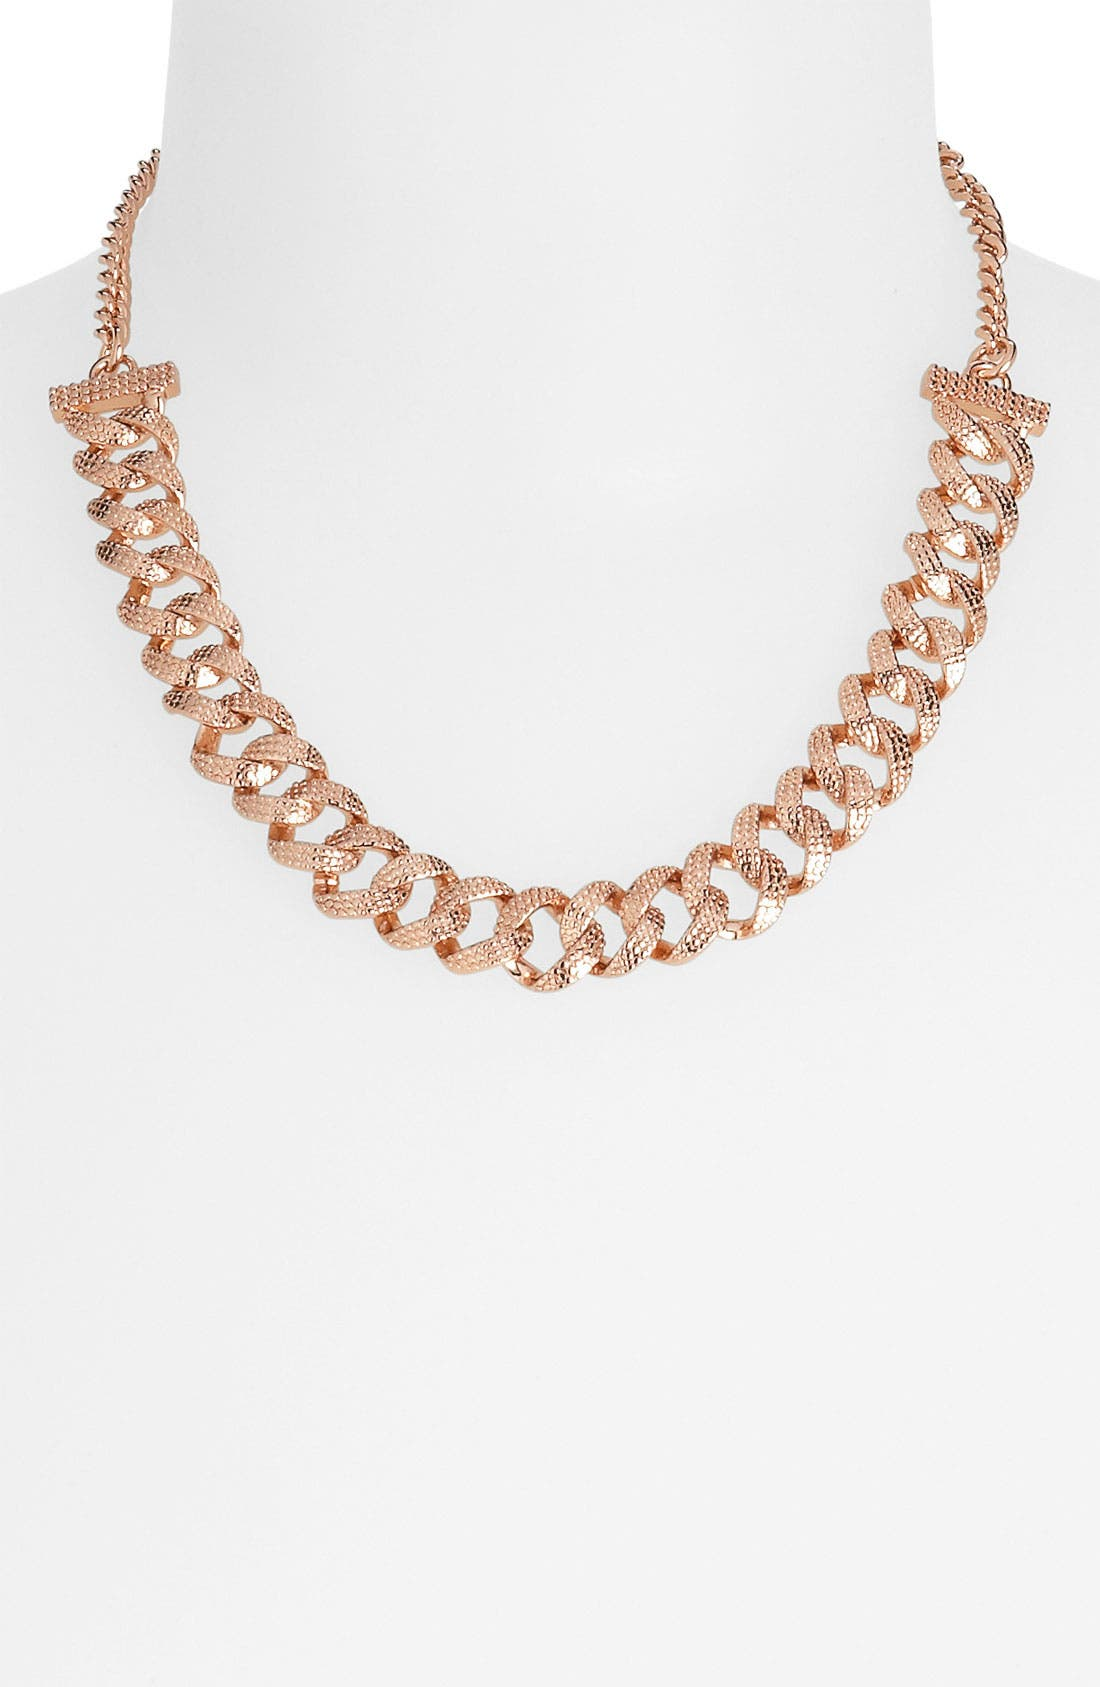 Alternate Image 1 Selected - MARC BY MARC JACOBS 'Lizard' Link Necklace